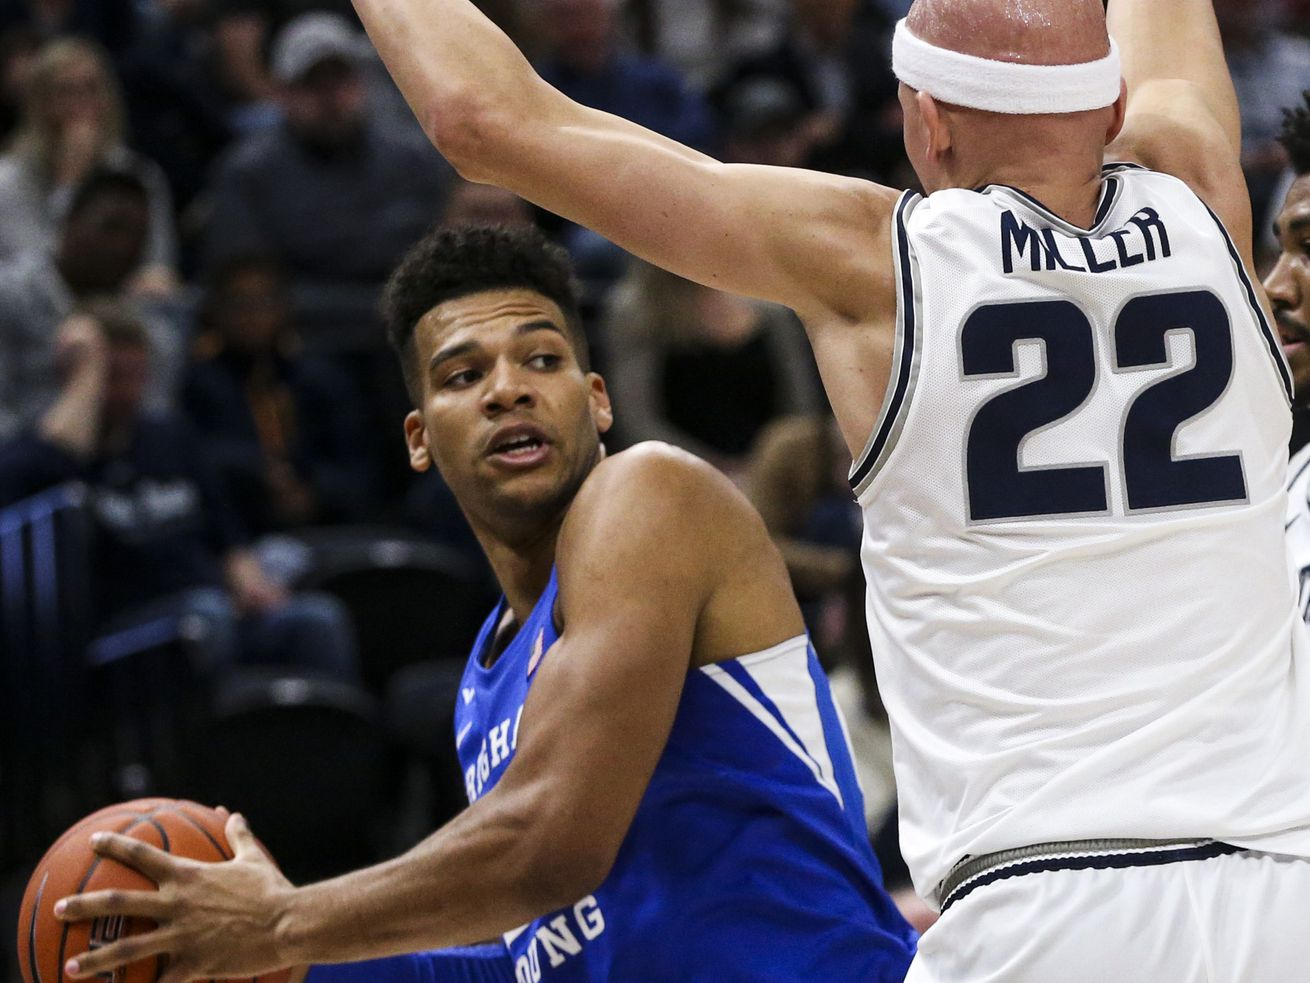 BYU's Yoeli Childs sidelined for Saint Mary's game due to injured finger